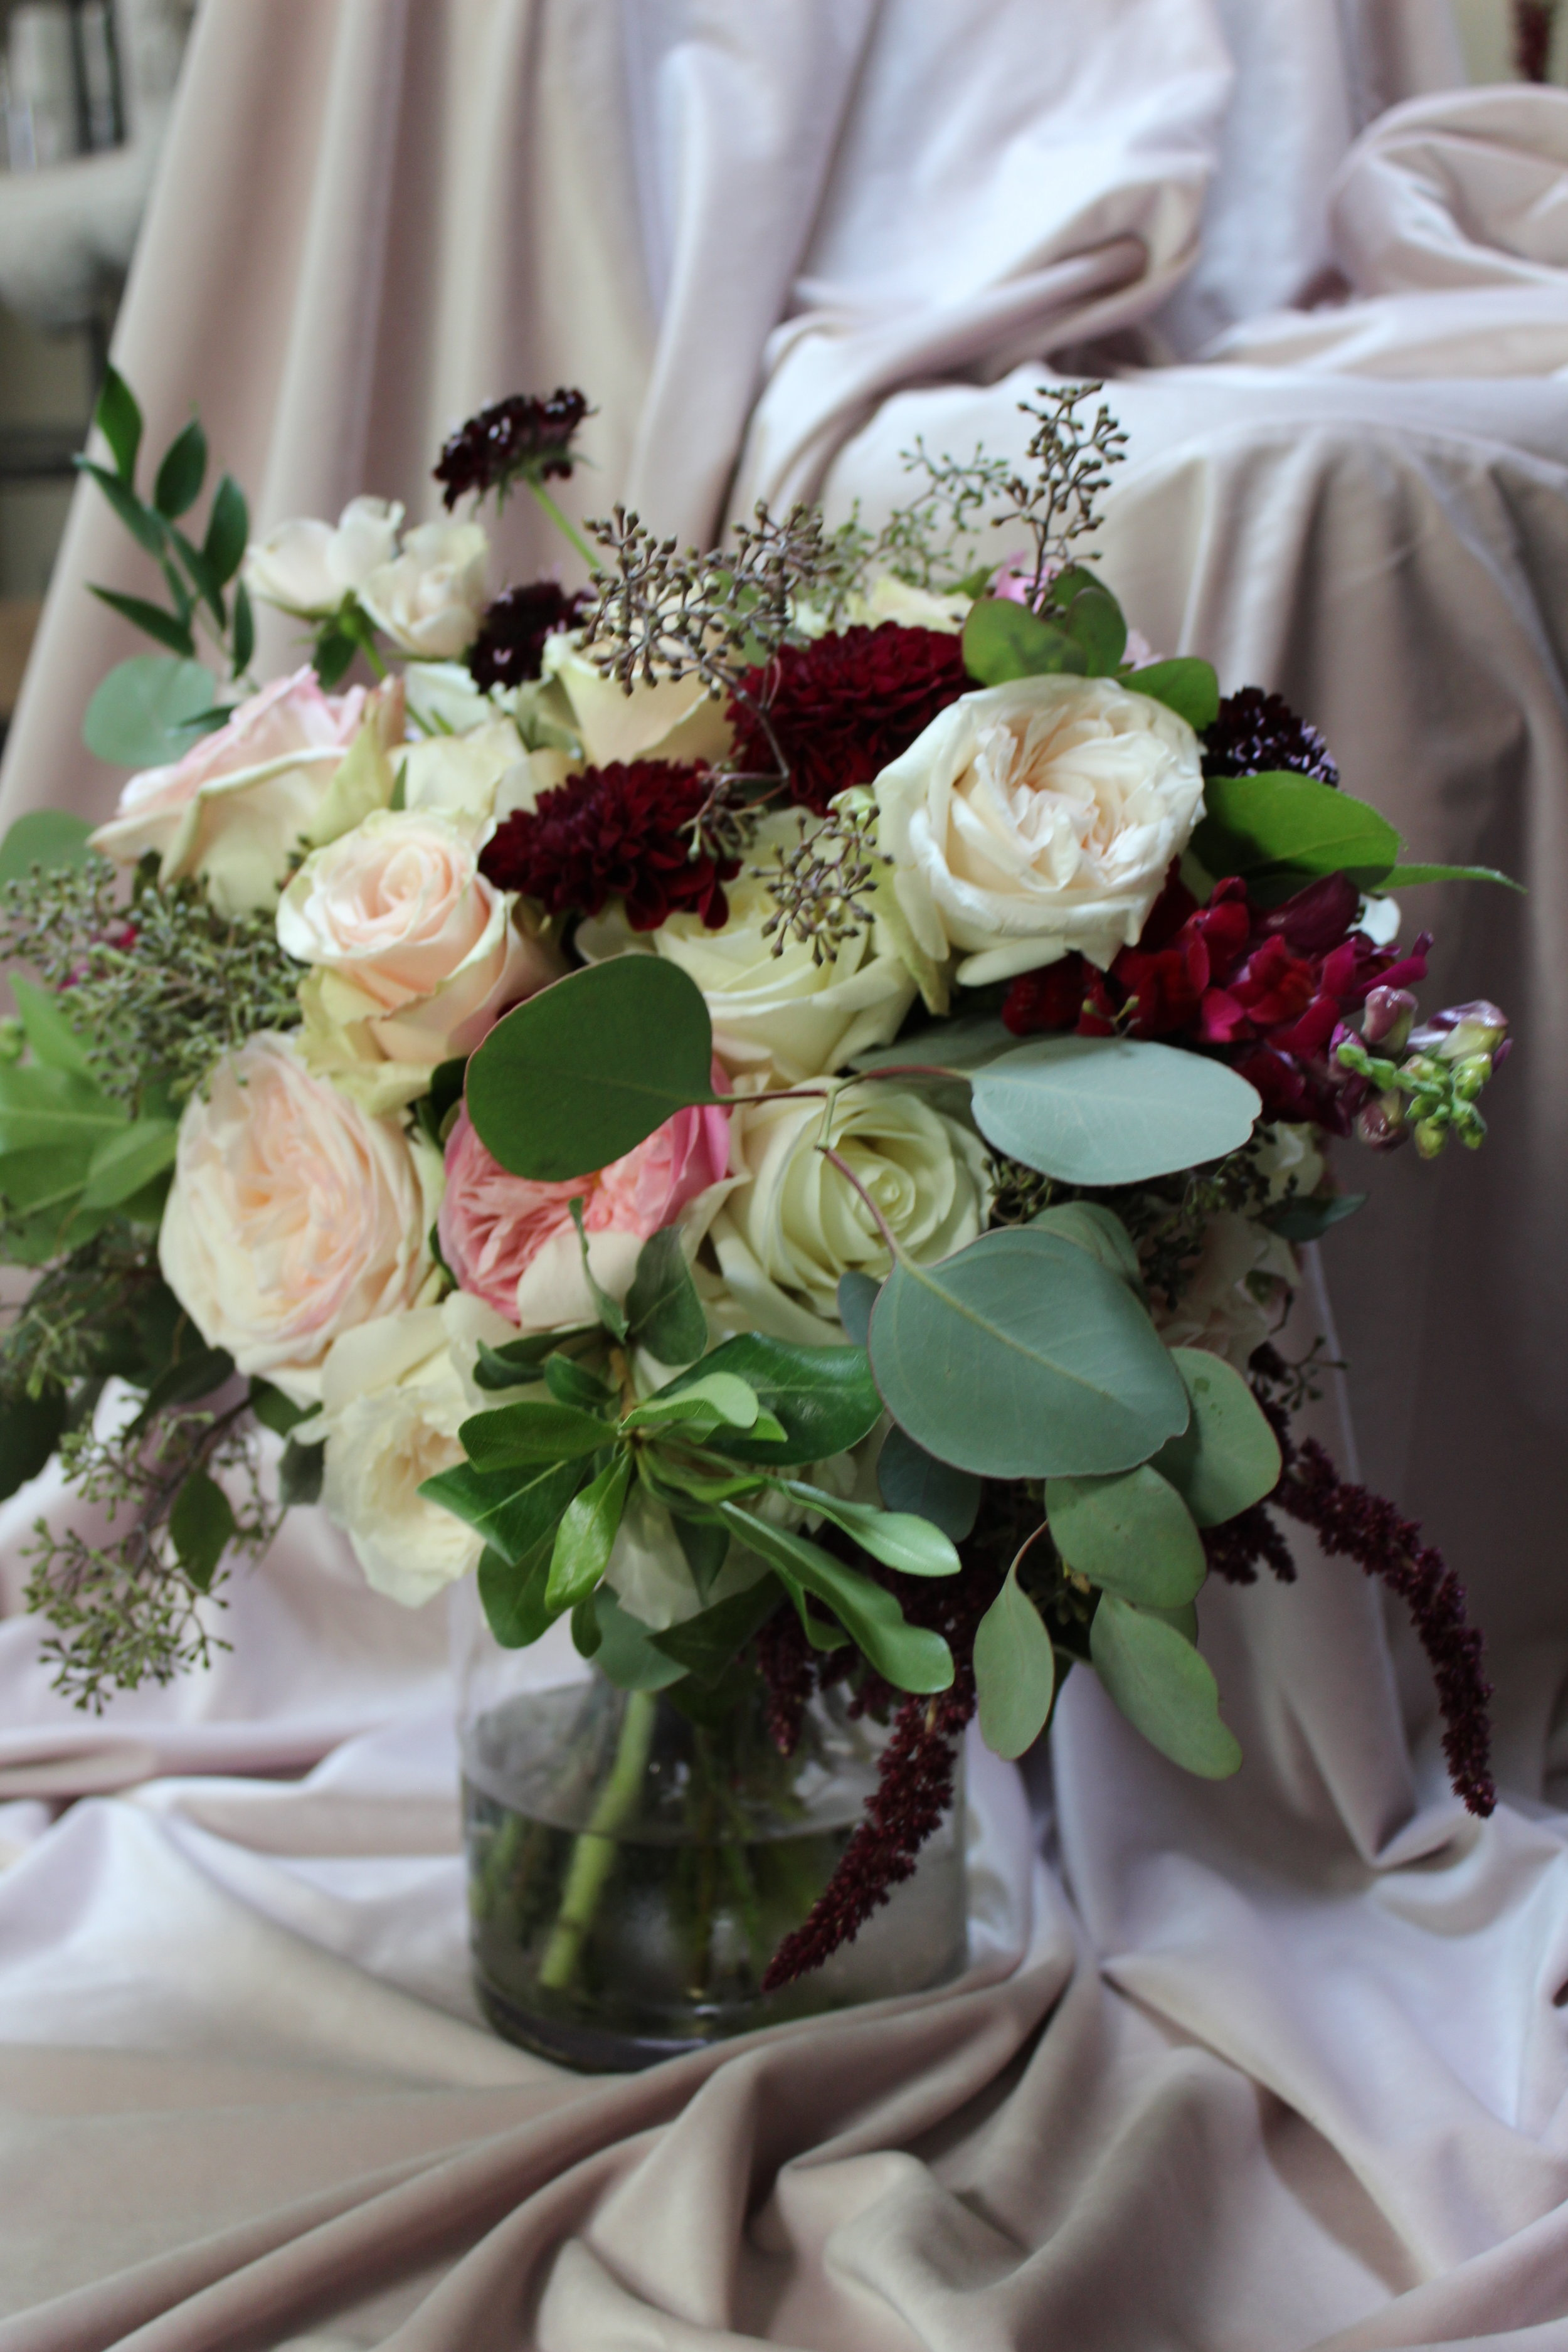 We spent the afternoon working with a unique color and texture palette for a wedding reception at The Renaissance Hotel in Cincinnati. Among the eucalyptus and sedum were milky mauve and cream roses, dazzling white hydrangeas, and snapdragons whose blooms were the deep wine of cherry skin. www.yellowcanaryonline.com